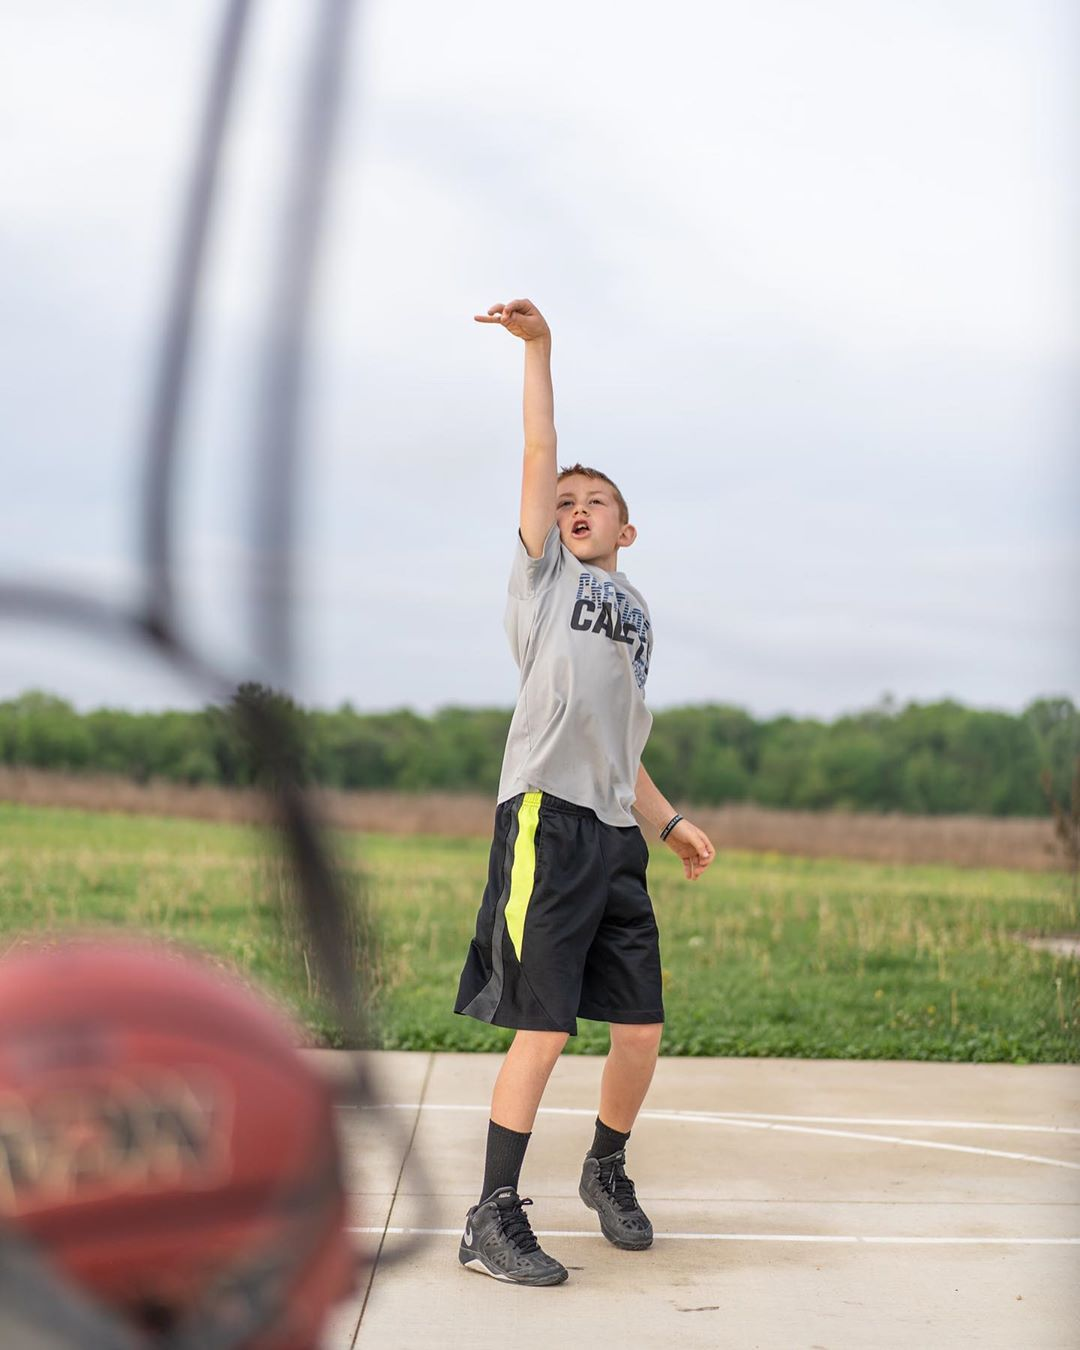 8 Signs That You Really Love Basketball